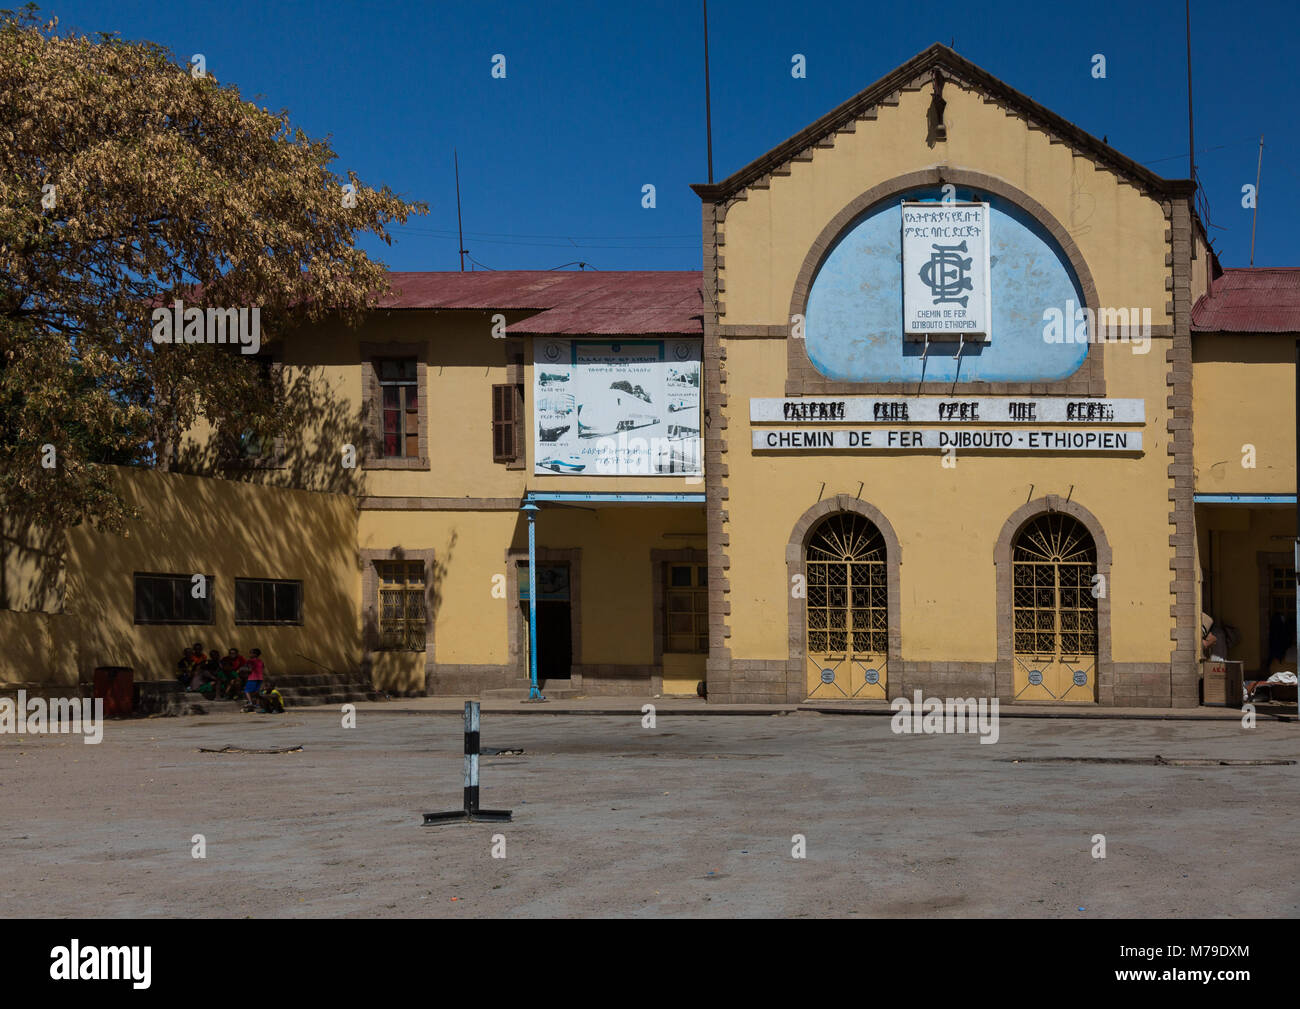 Station of the ethio-djibouti railway, Dire dawa region, Dire dawa, Ethiopia - Stock Image